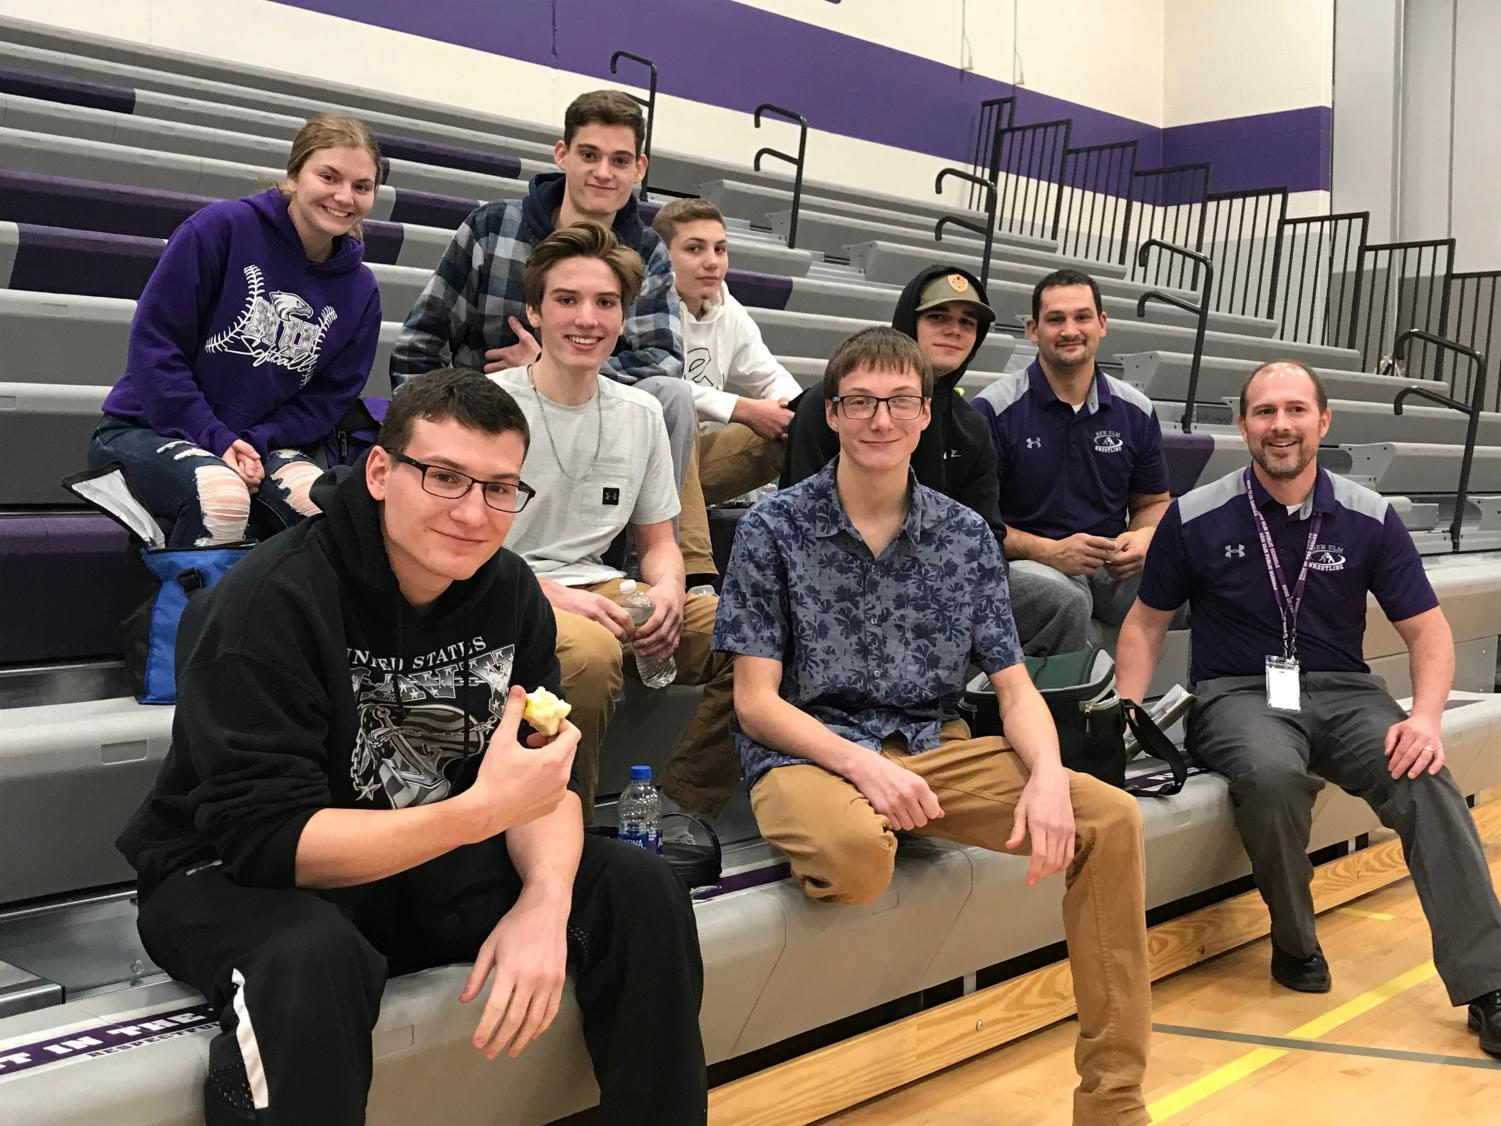 Members of the New Ulm High School wrestling team enjoying some down time before taking on the state-ranked Fairmont Cardinals - go Eagles!